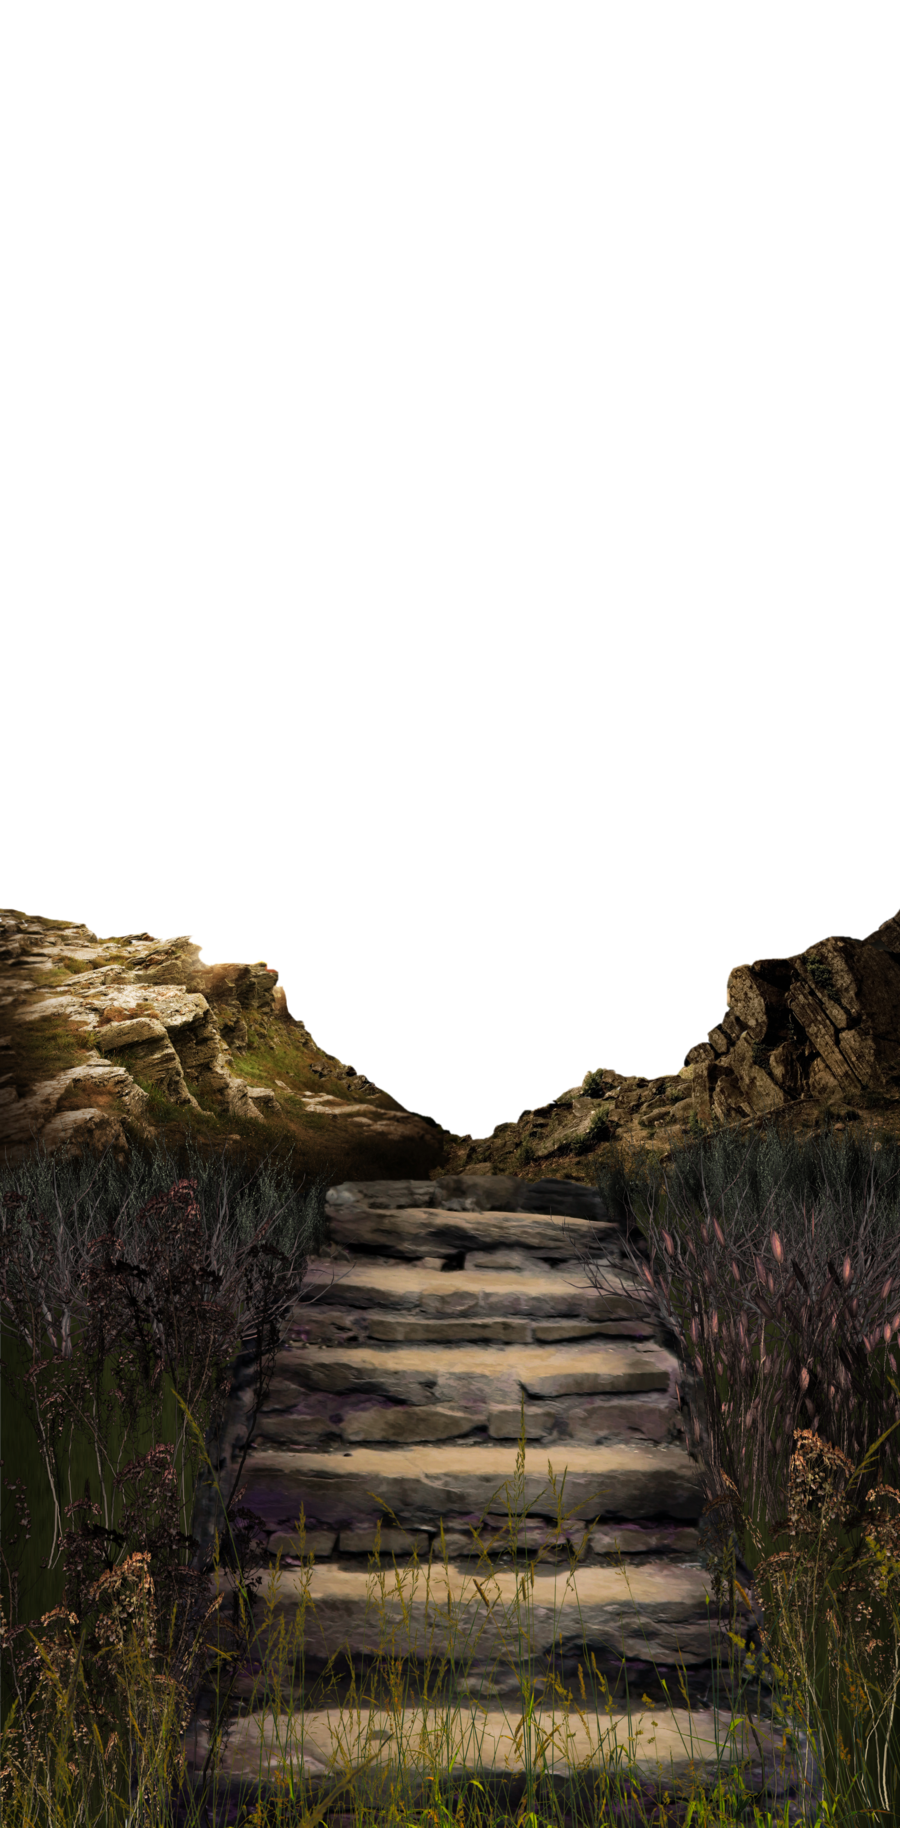 Png photo background. Walkway to your by